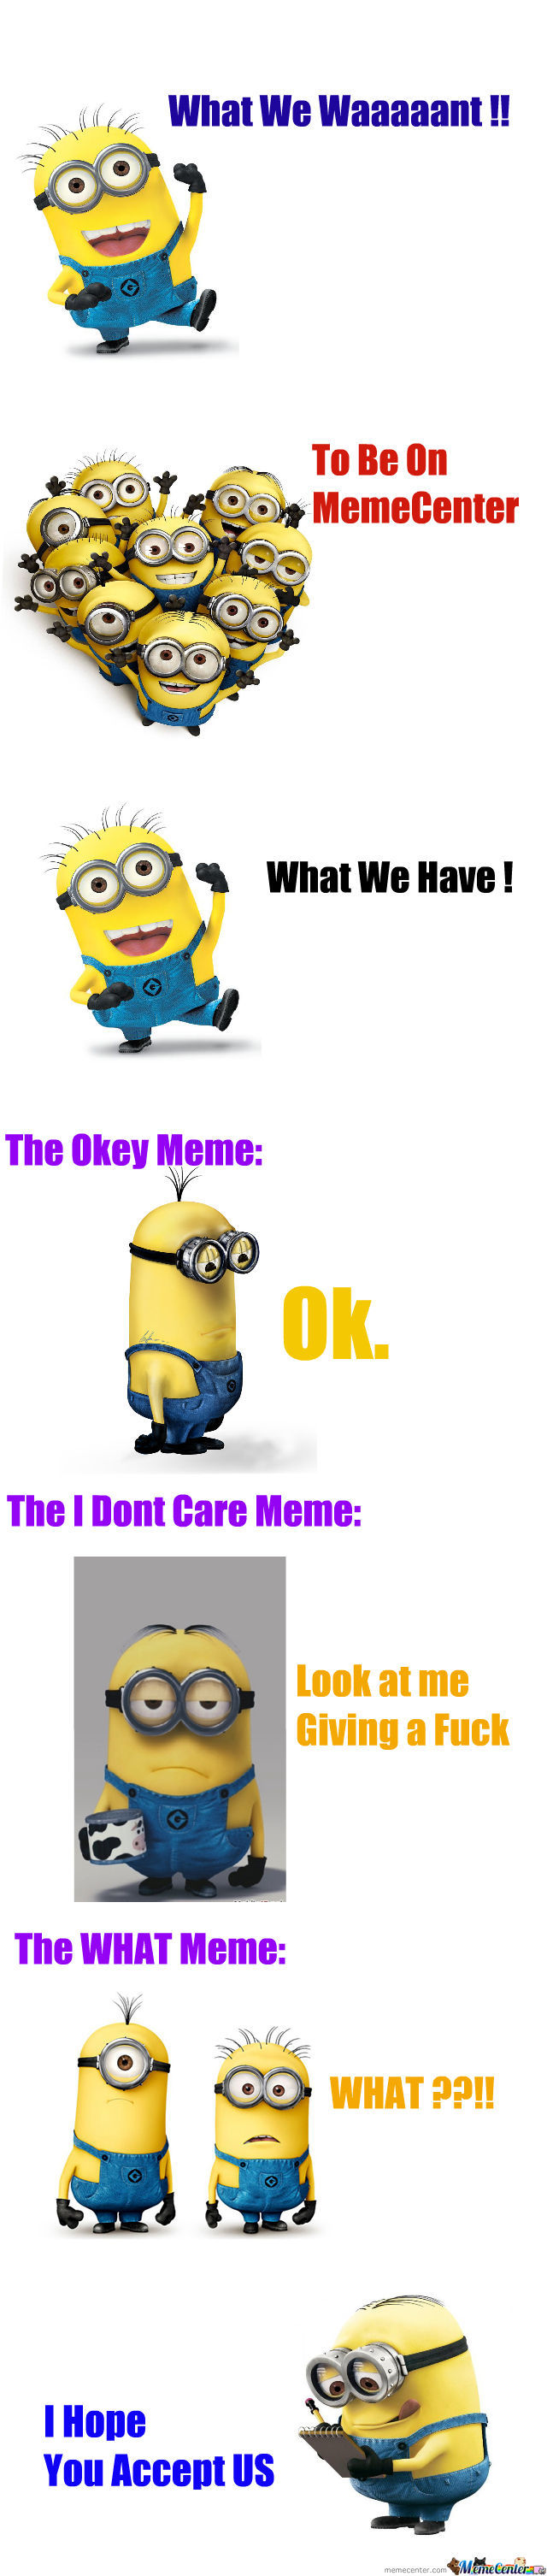 We Want To Be On Memecenter